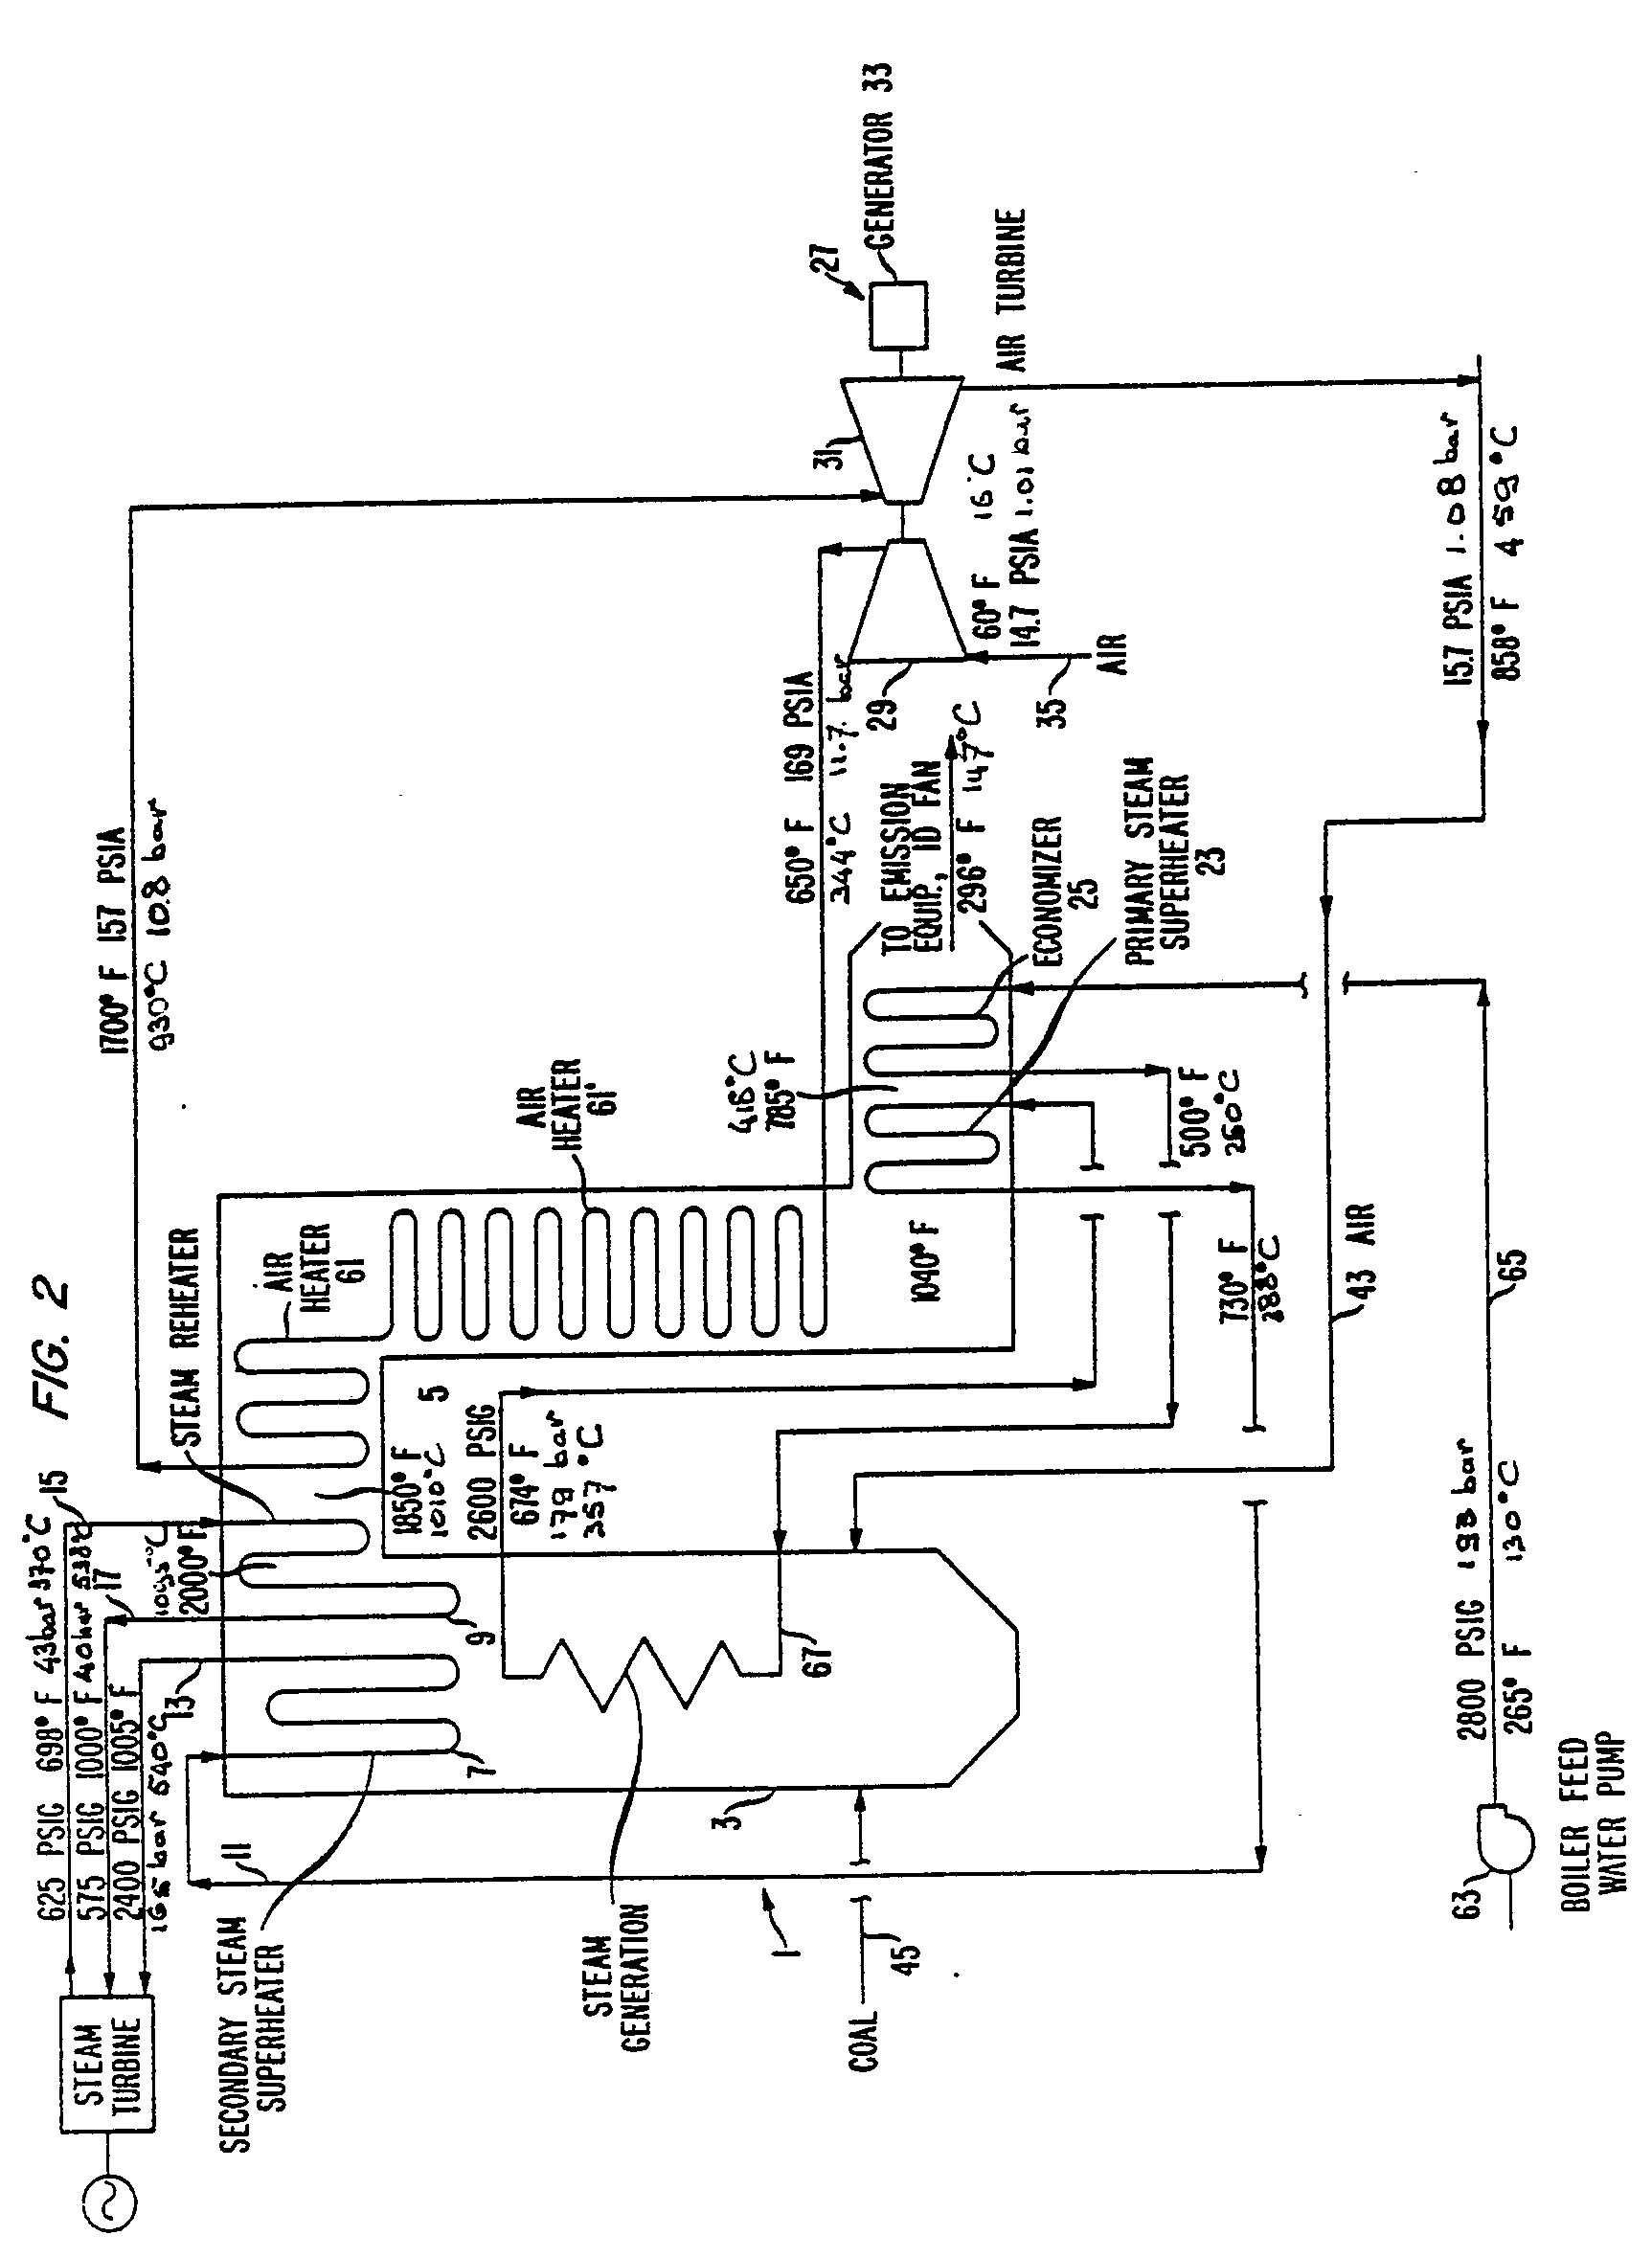 diagram 2001 oldsmobile aurora wiring diagram full version hd quality wiring diagram longyuewiring pierogabriellinellescuole it 2001 oldsmobile aurora wiring diagram